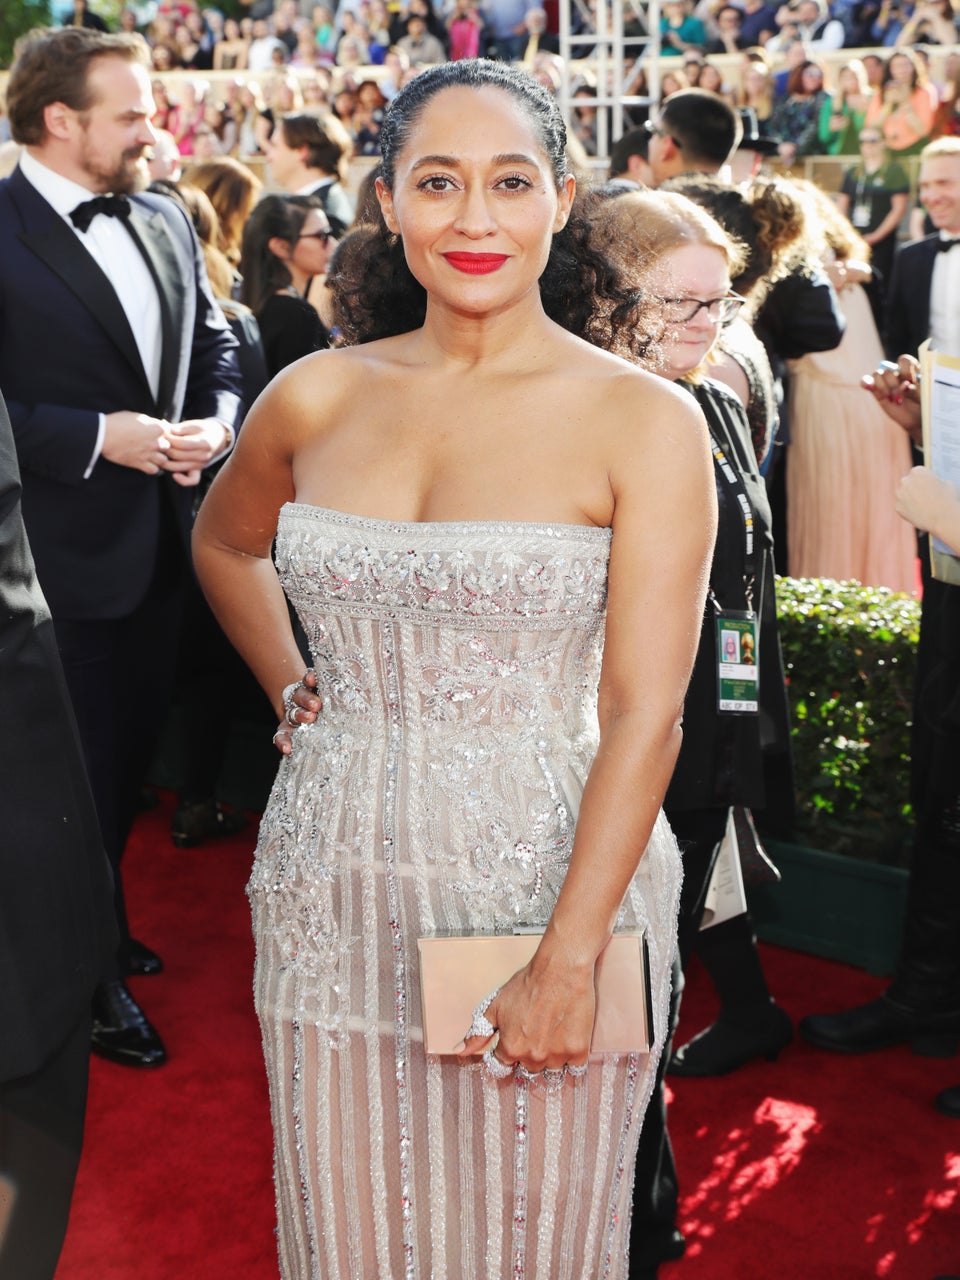 Tracee Ellis Ross Kicks Off The Golden Globes Red Carpet In A Flawless Ponytail